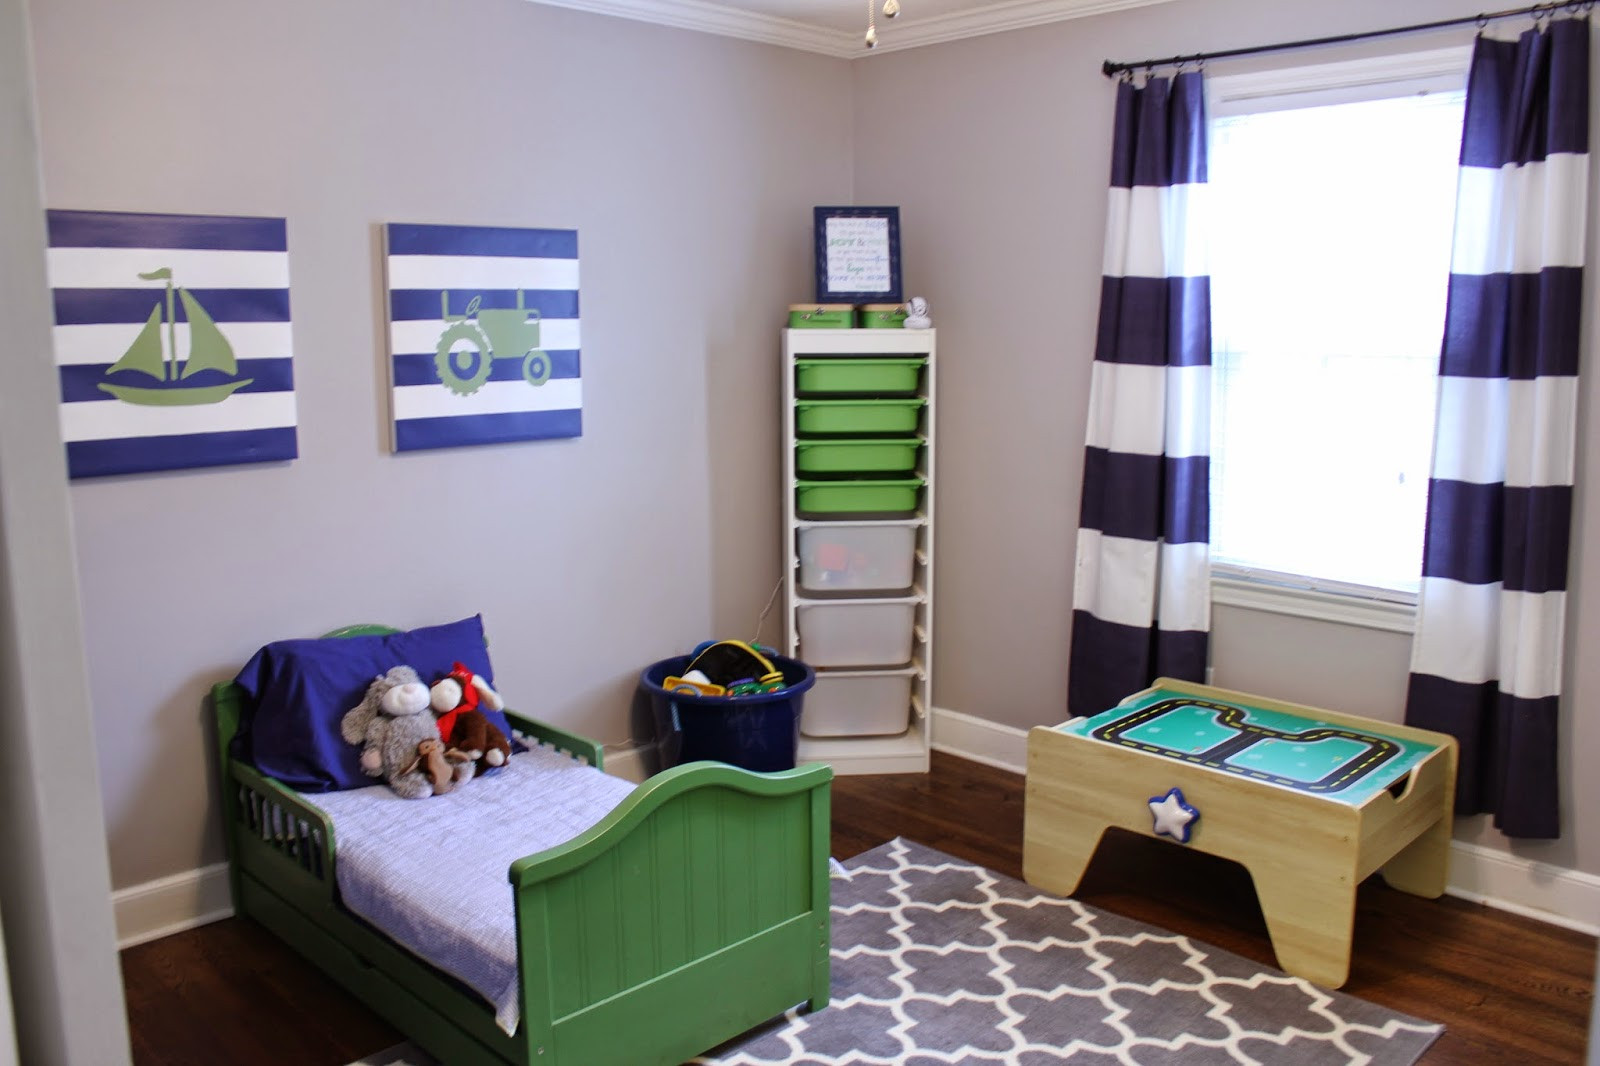 Boys Kids Room  Toddler Room Ideas for Boy – Finding the perfect Room